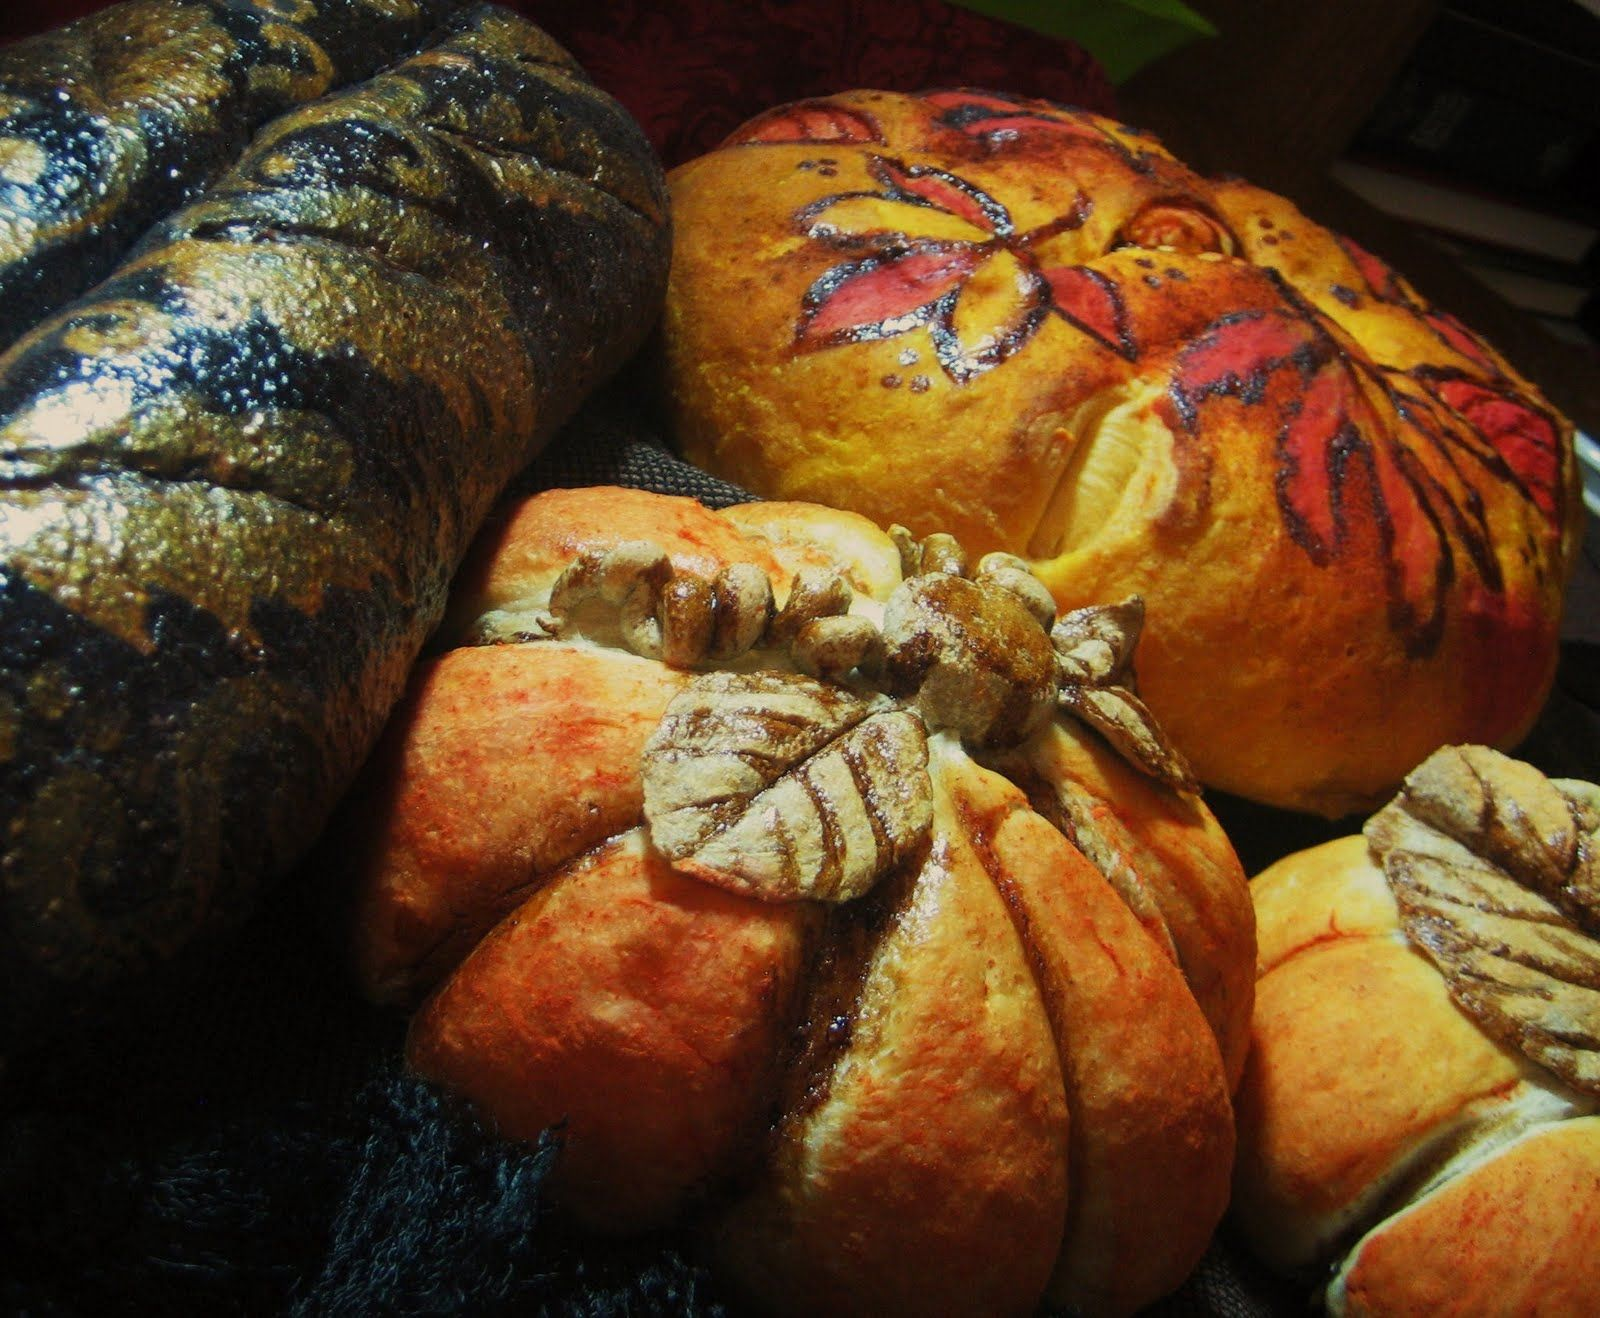 Check out Chef Tess bakeresse and her painted bread